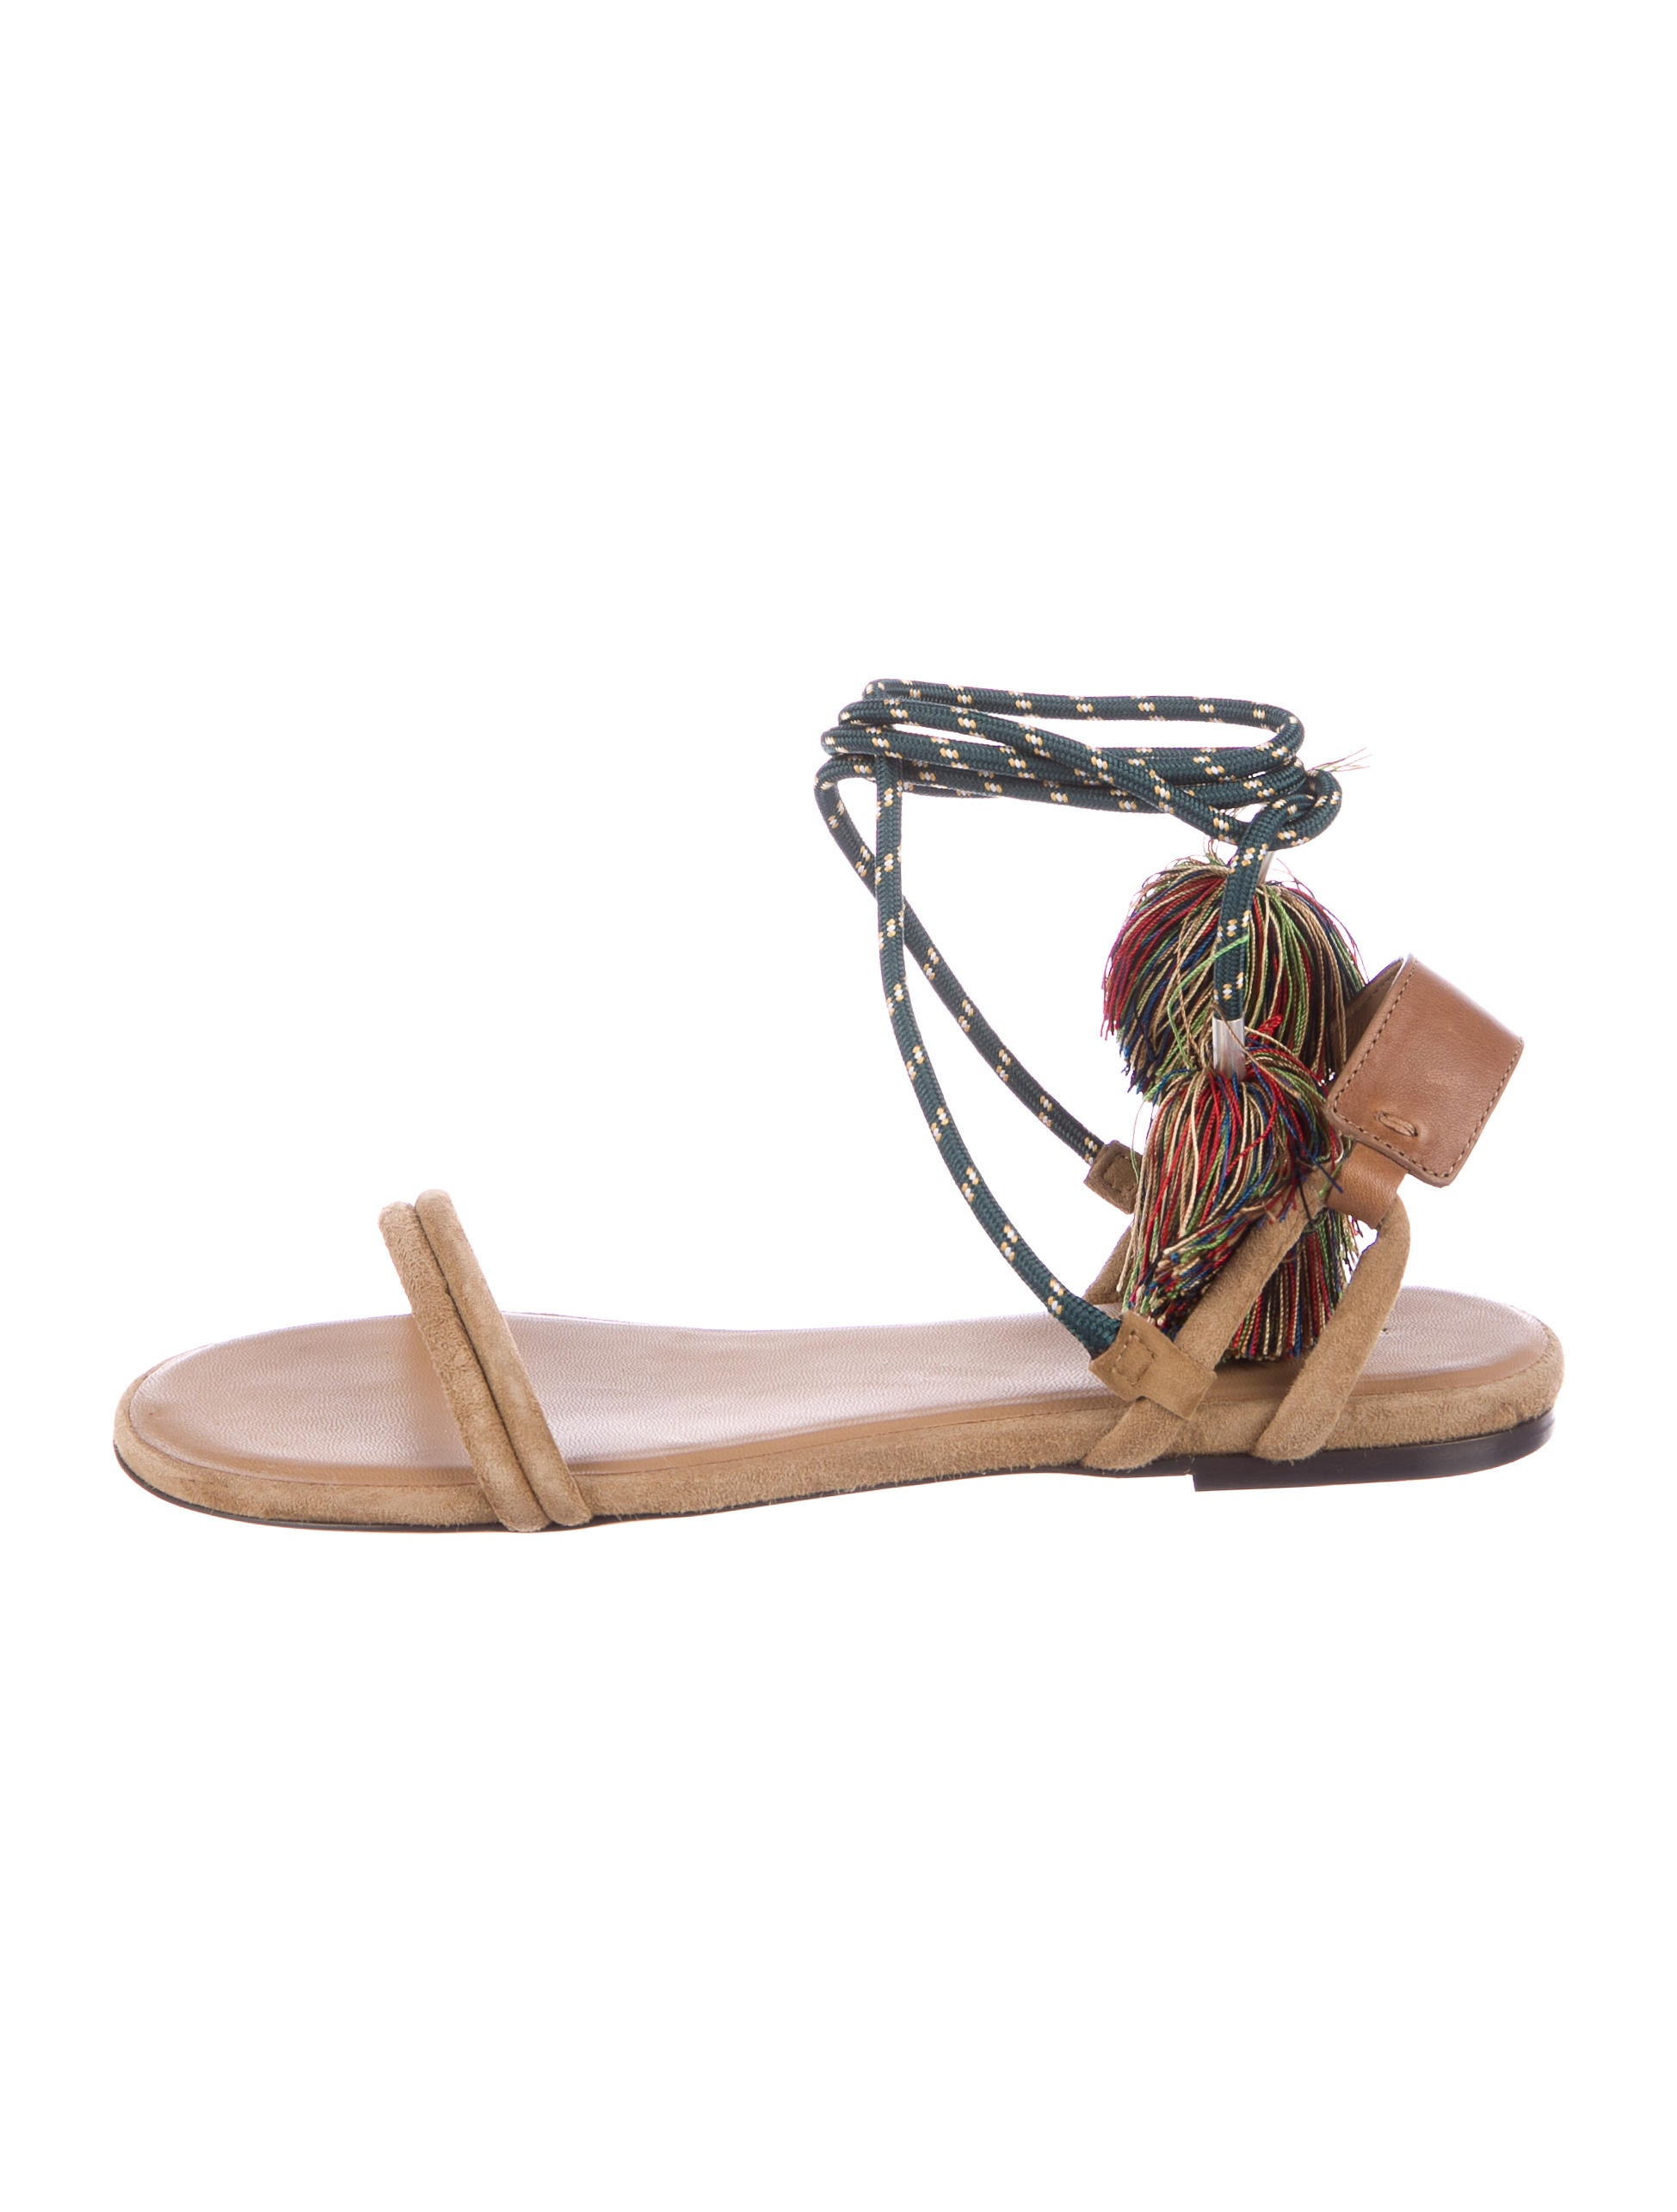 ... paypal clearance 2014 cheap sale factory outlet. Isabel Marant Cook  Wrap-Around Sandals 81d8f64c6e